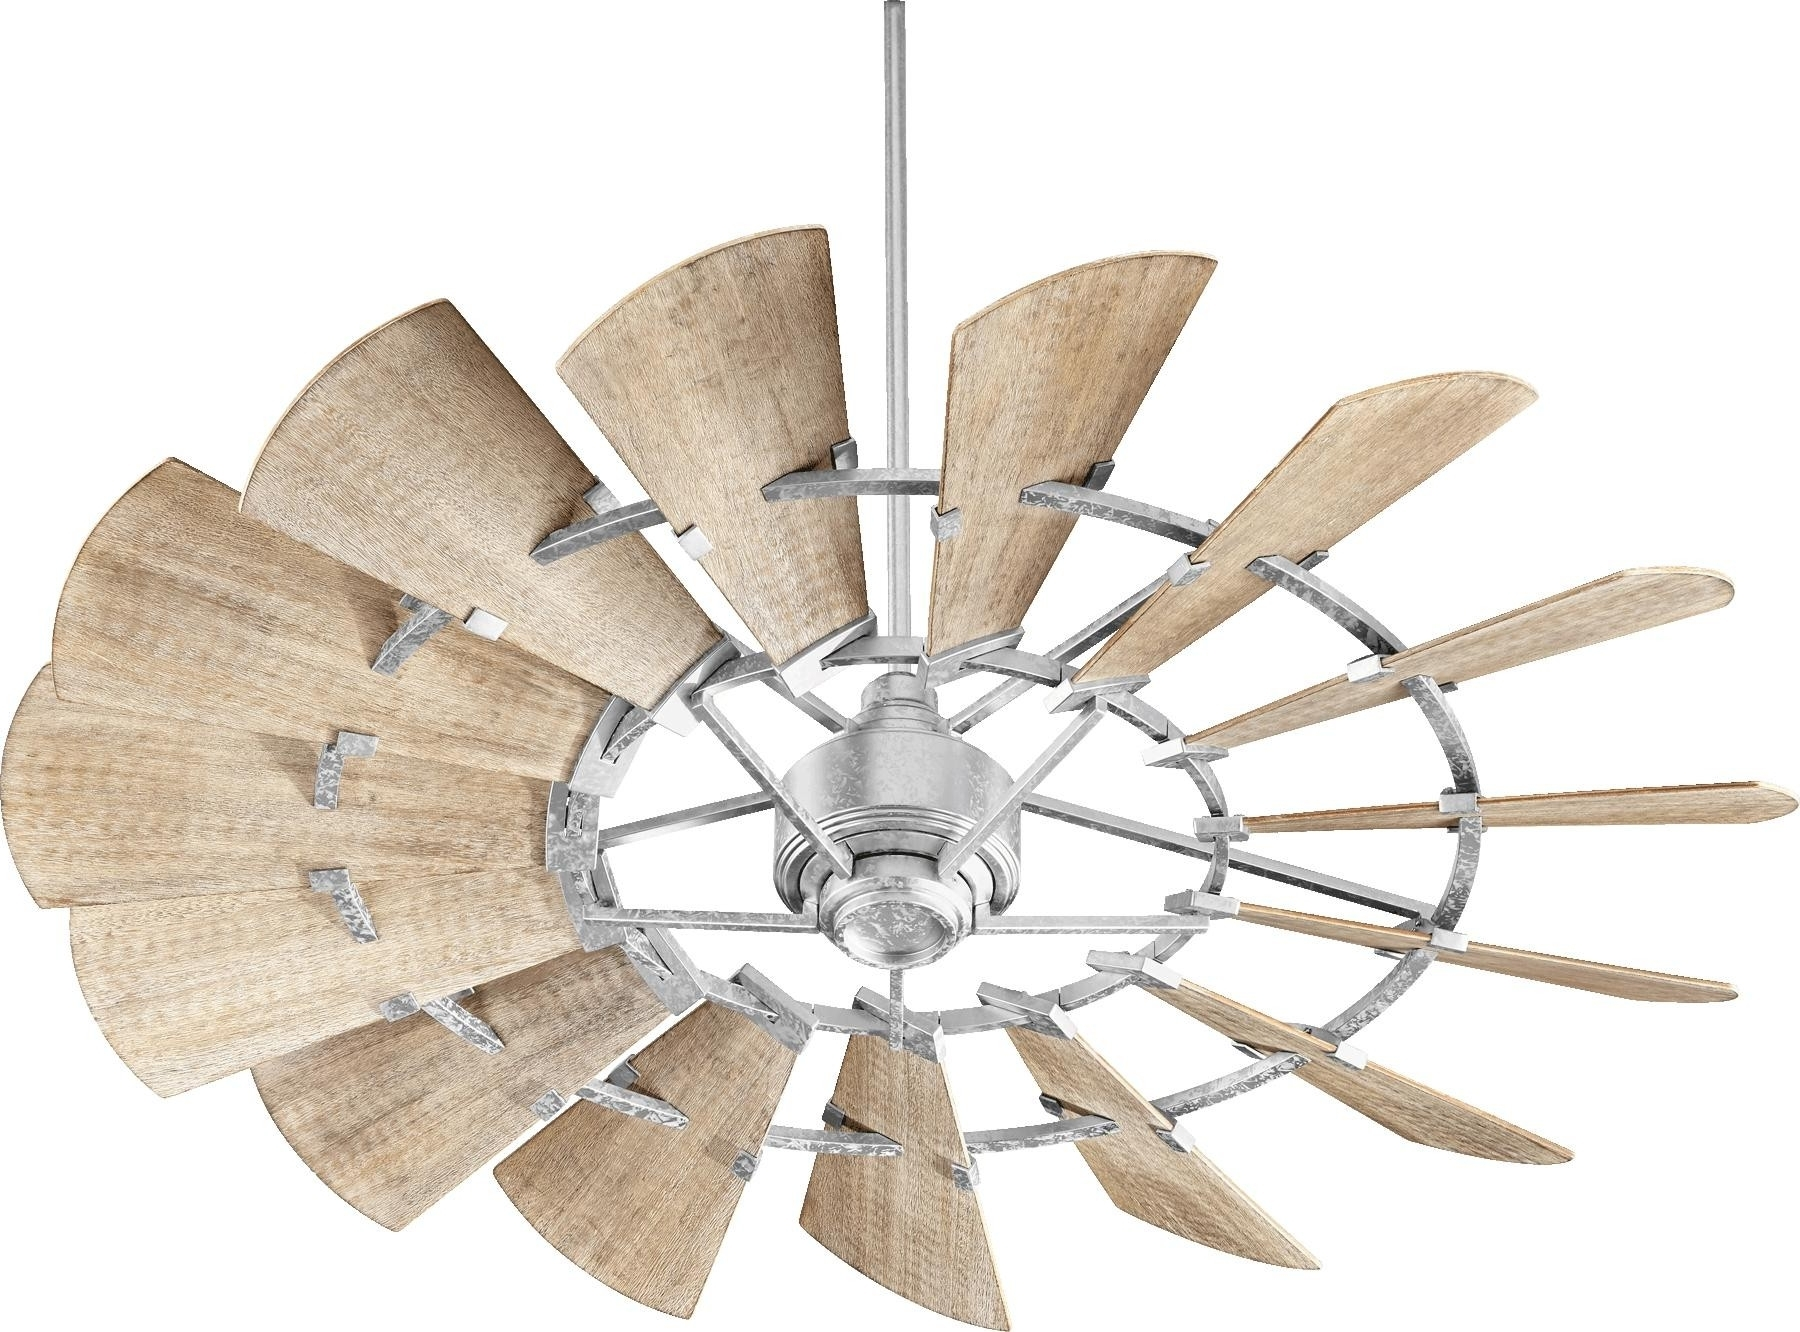 2018 Quorum Windmill Ceiling Fan Model 196015 9 In Galvanized With Quorum Outdoor Ceiling Fans (View 10 of 20)